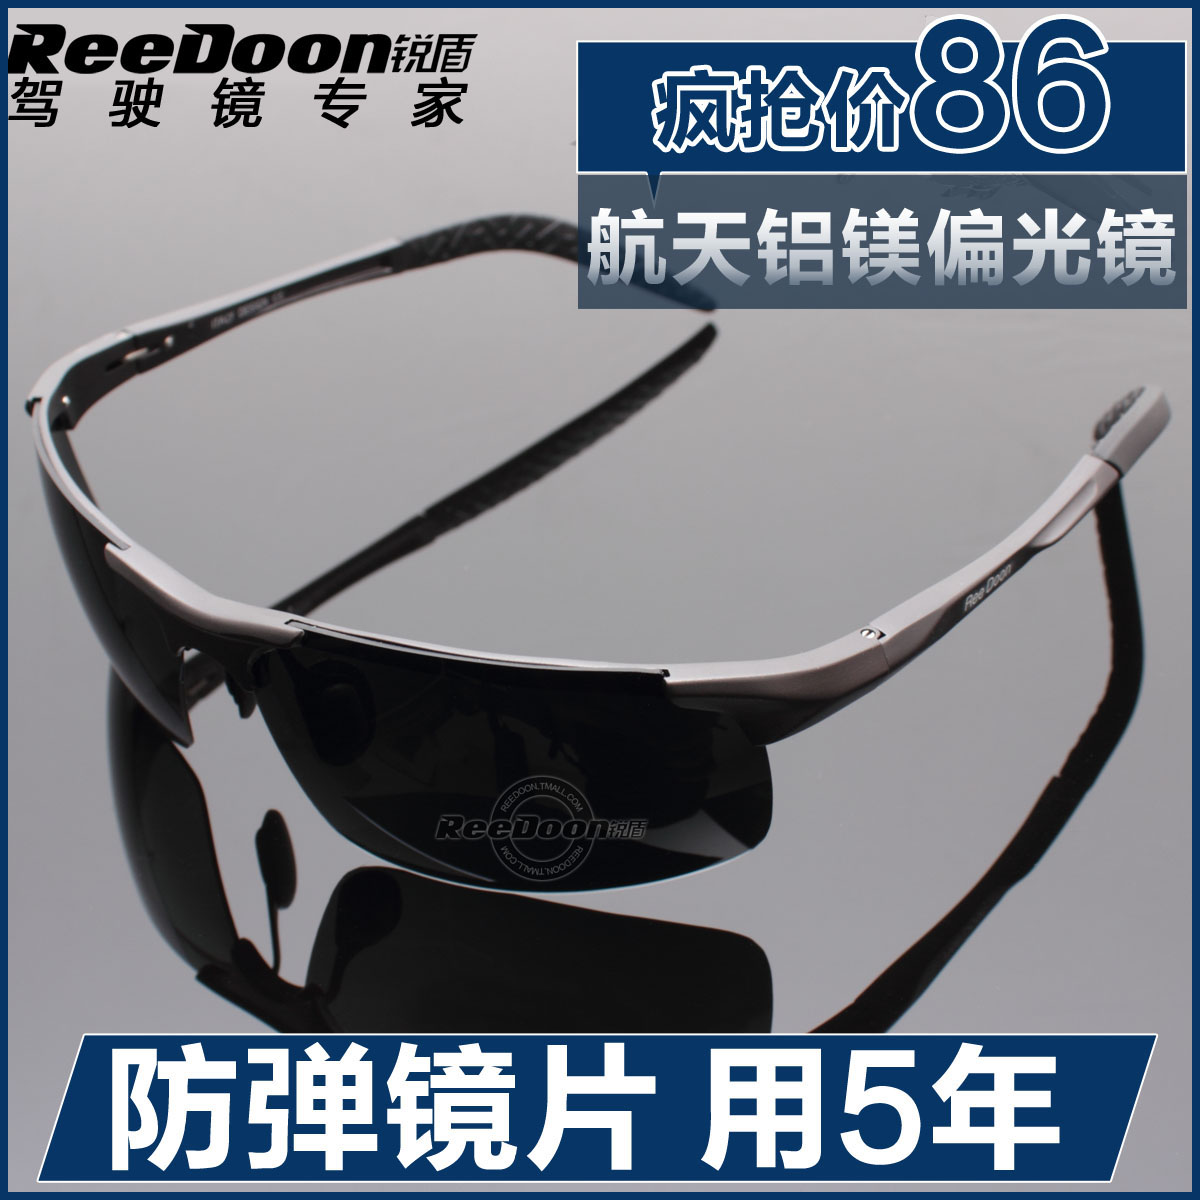 Rui Shield Police sunglasses Menx26#39;s sunglasses polarizer tide male sport cool magnesium drivers mirror sunglasses